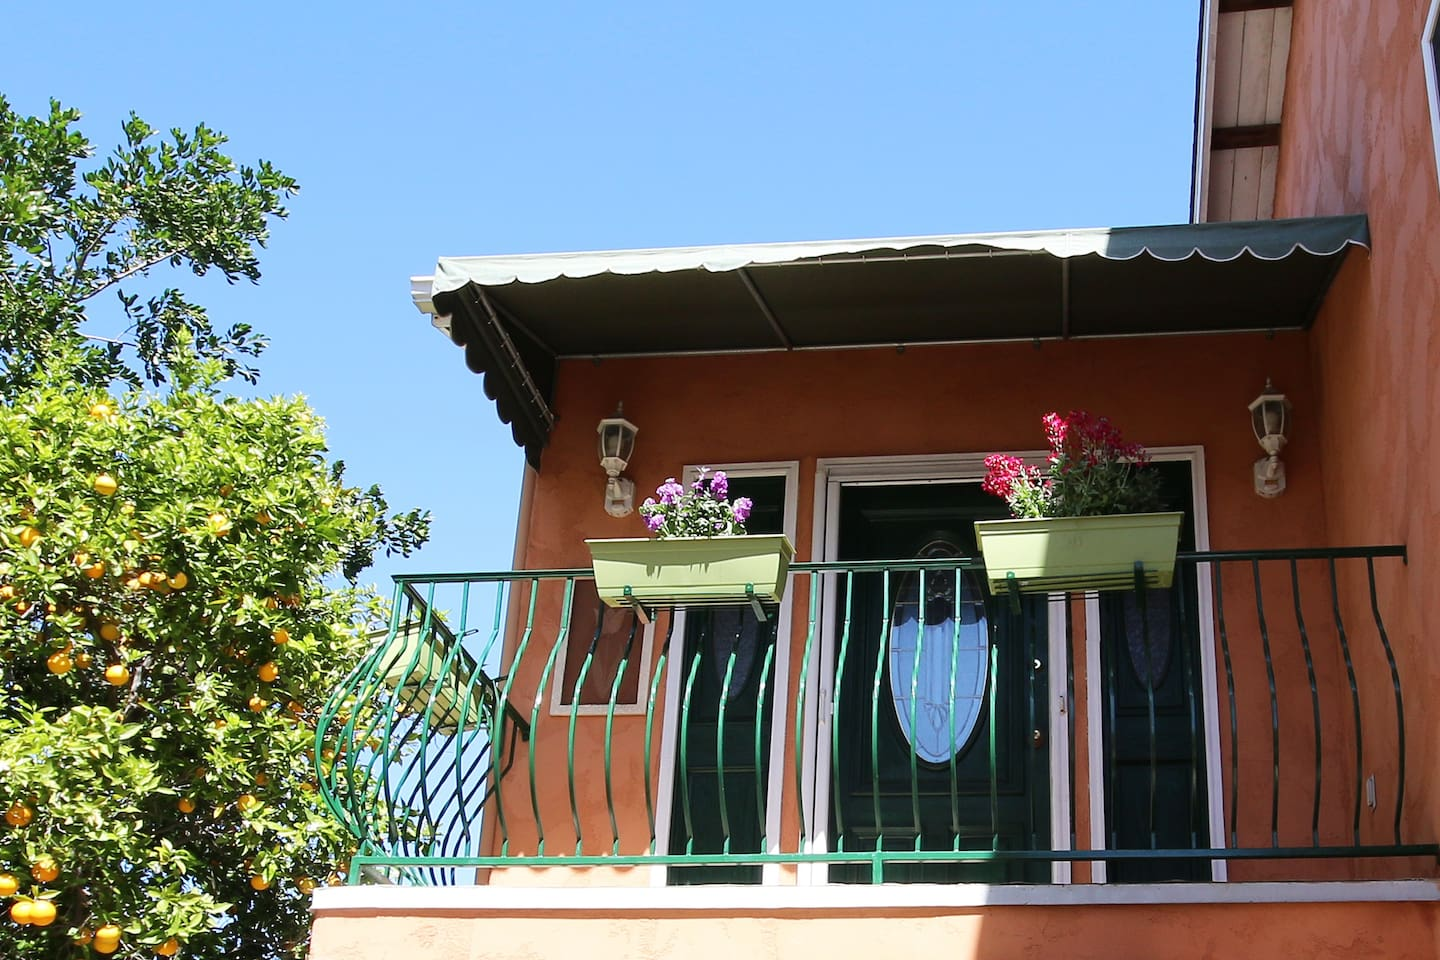 Picture yourself sitting in the sun on your lovely private balcony, sipping a cup of coffee...